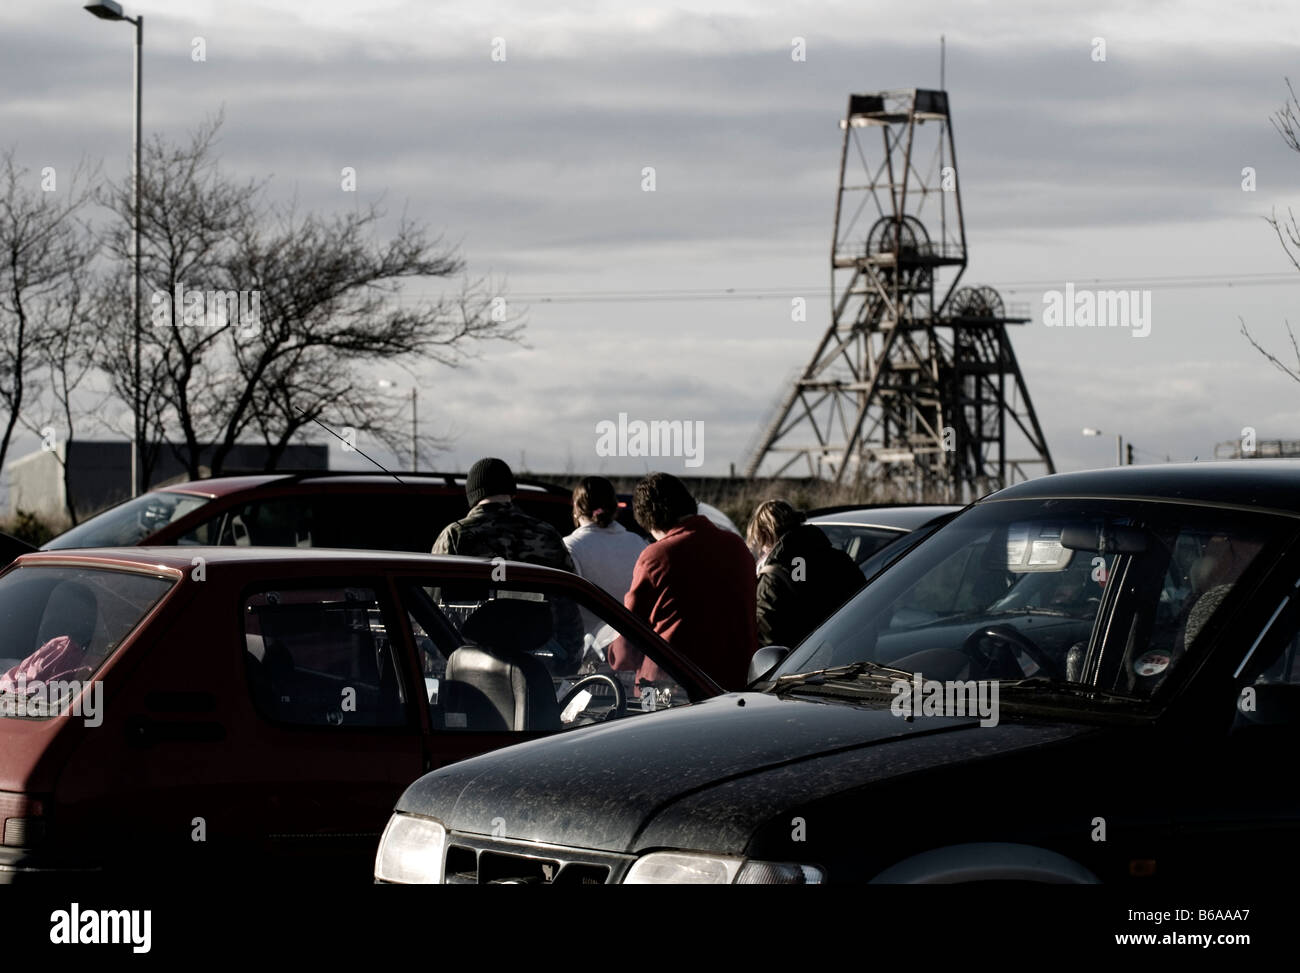 Car park with people, with the old existence of the South Crofty mines - Stock Image